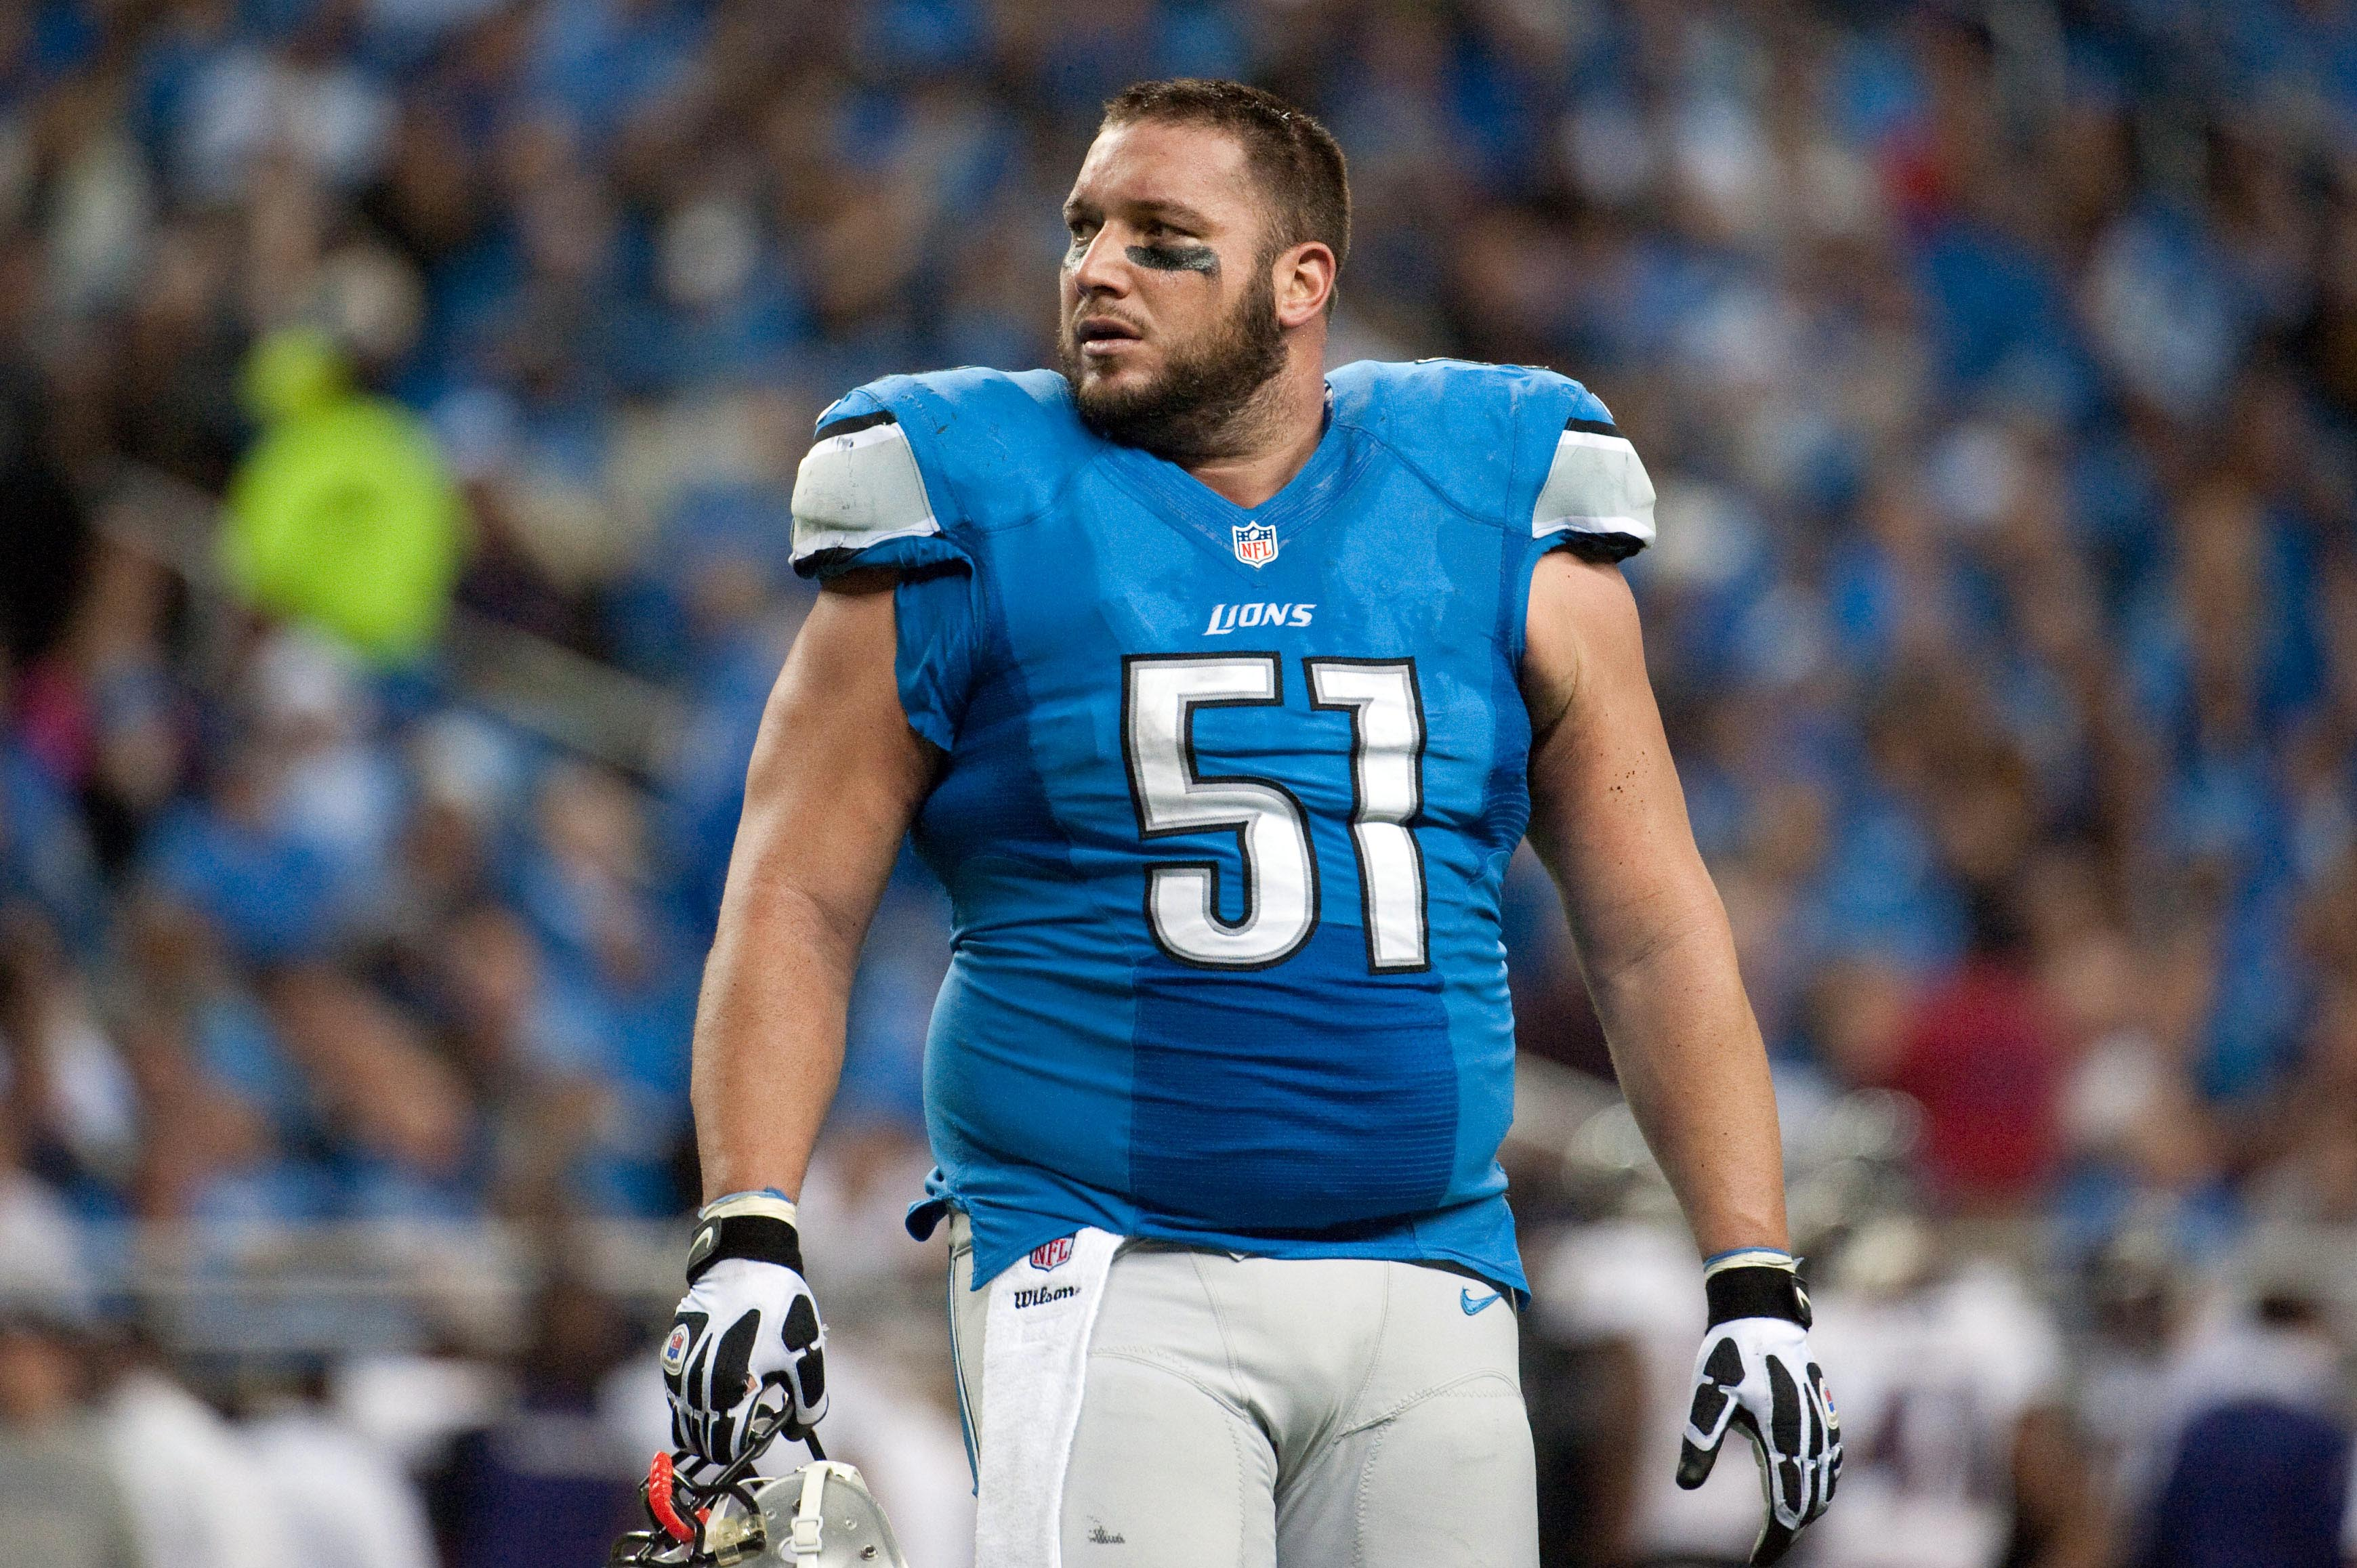 Dominic Raiola fined $10k for unnecessary roughness